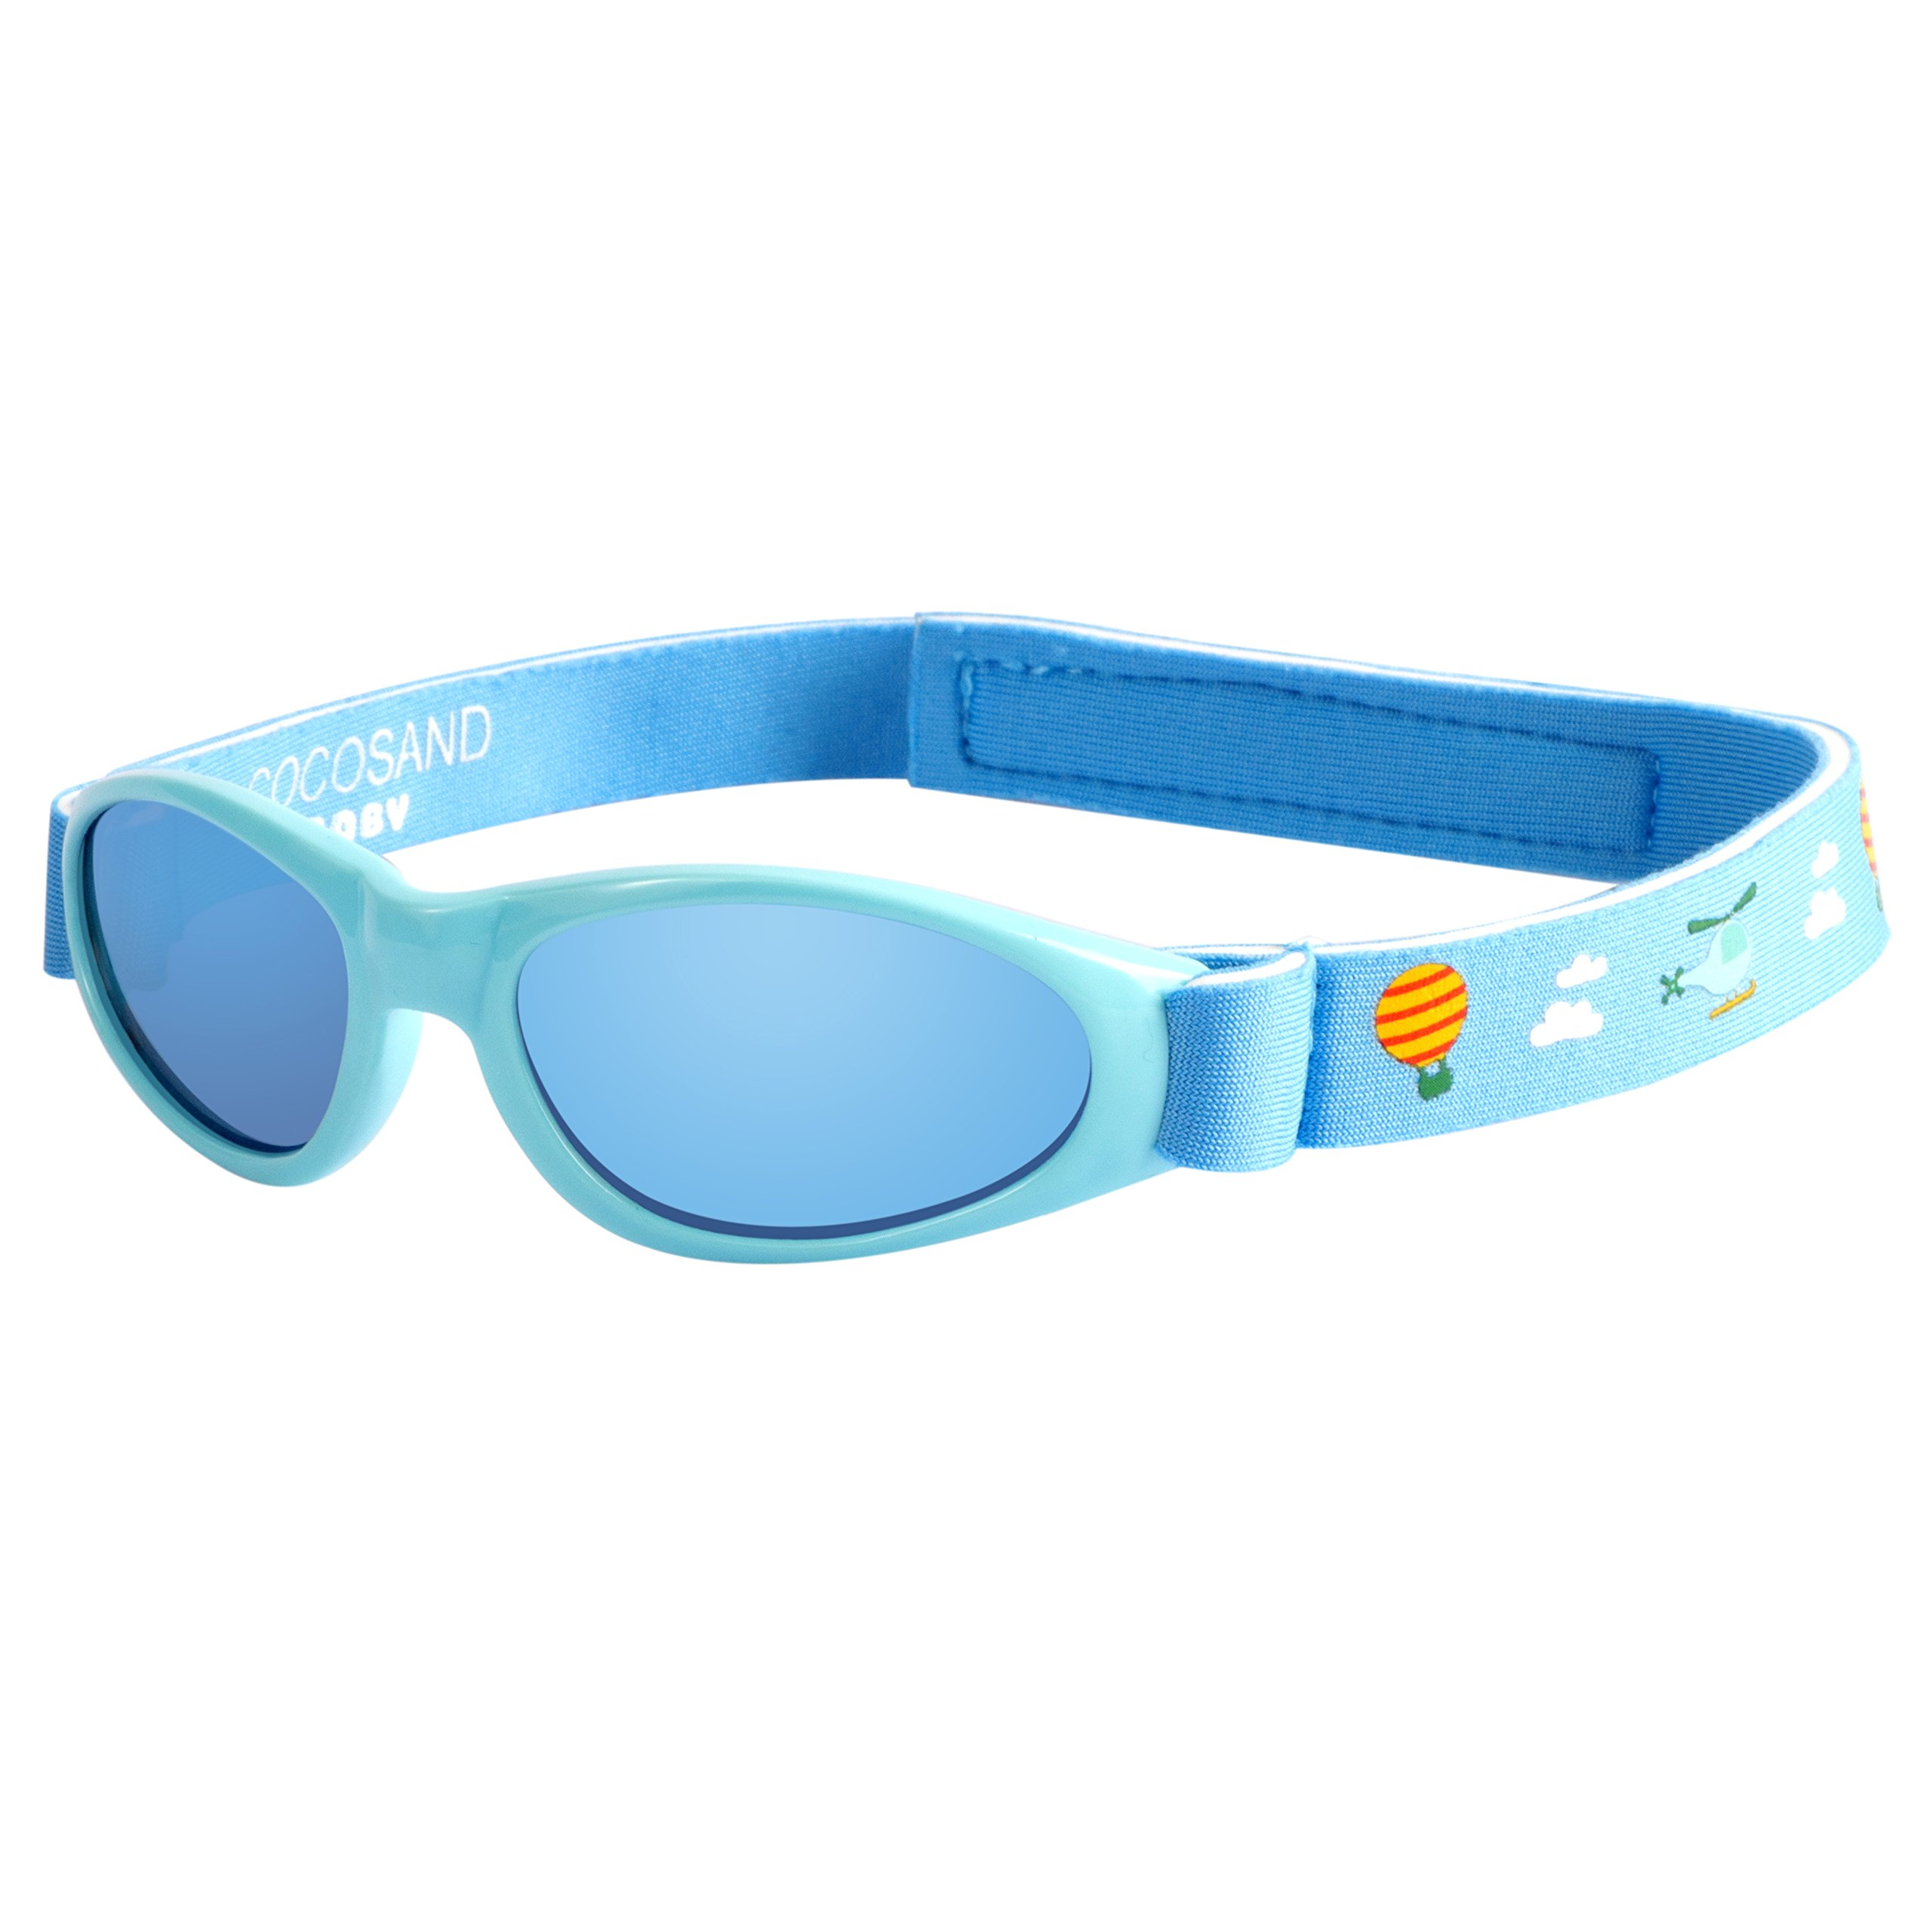 Baby Navigator Sunglasses with UV400 Lens and Adjustable Neoprene Straps & Exciting colors 0-12months